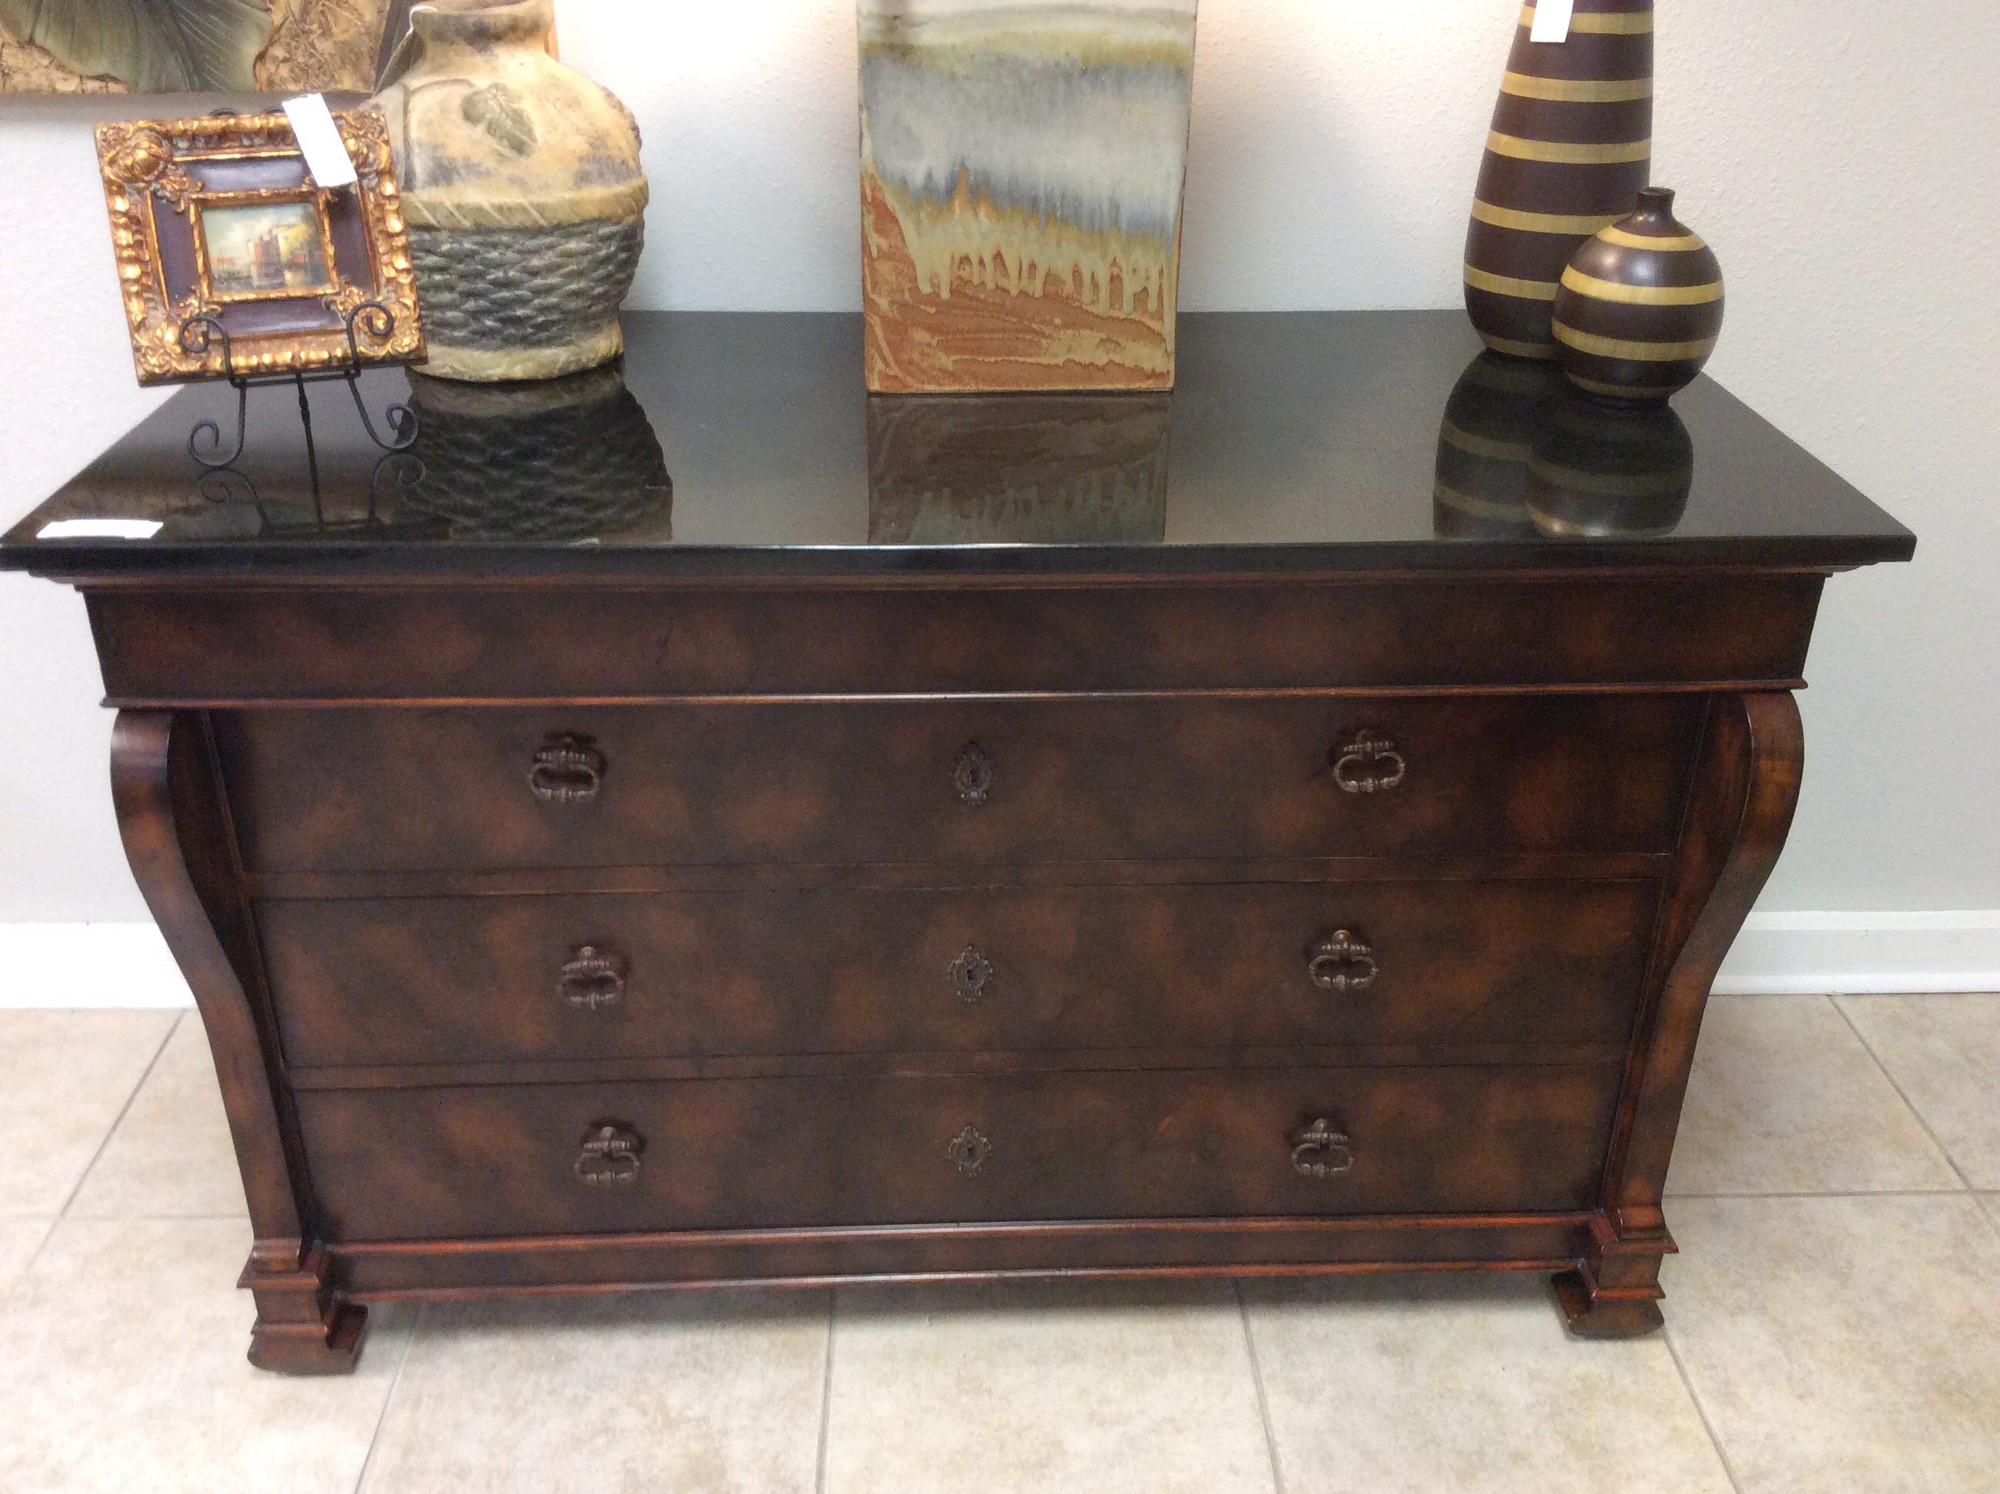 "This is a stunning MAITLAND SMITH chest. It features solid wood construction with a burled walnut finish. There are 3 very roomy drawers, as well as a ""hidden"" drawer for your valuables. The top is pieced black granite. Gorgeous!"